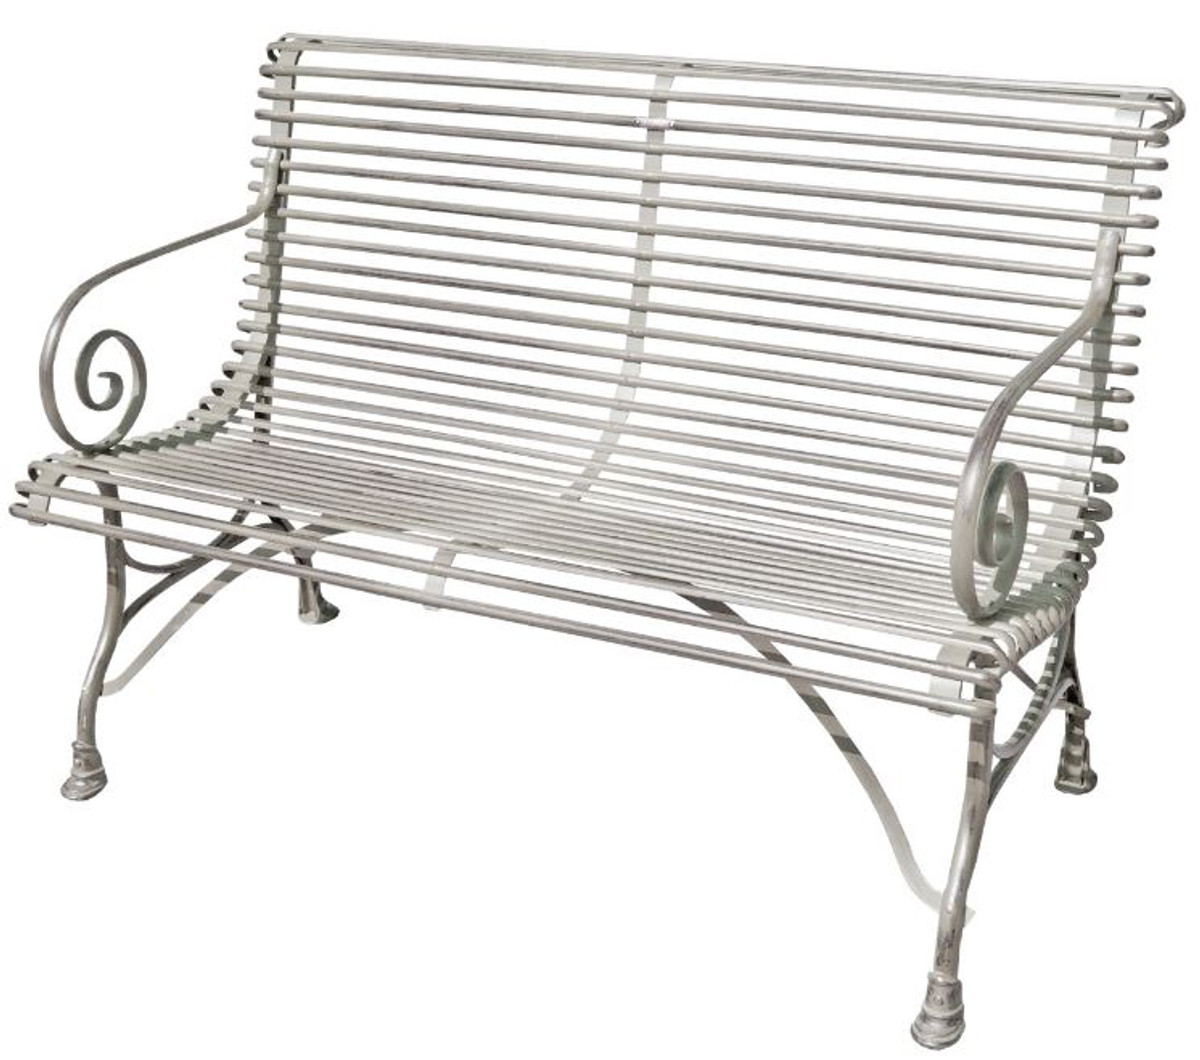 Pleasing Casa Padrino 2 Seater Garden Bench Vintage Wrought Iron Gmtry Best Dining Table And Chair Ideas Images Gmtryco